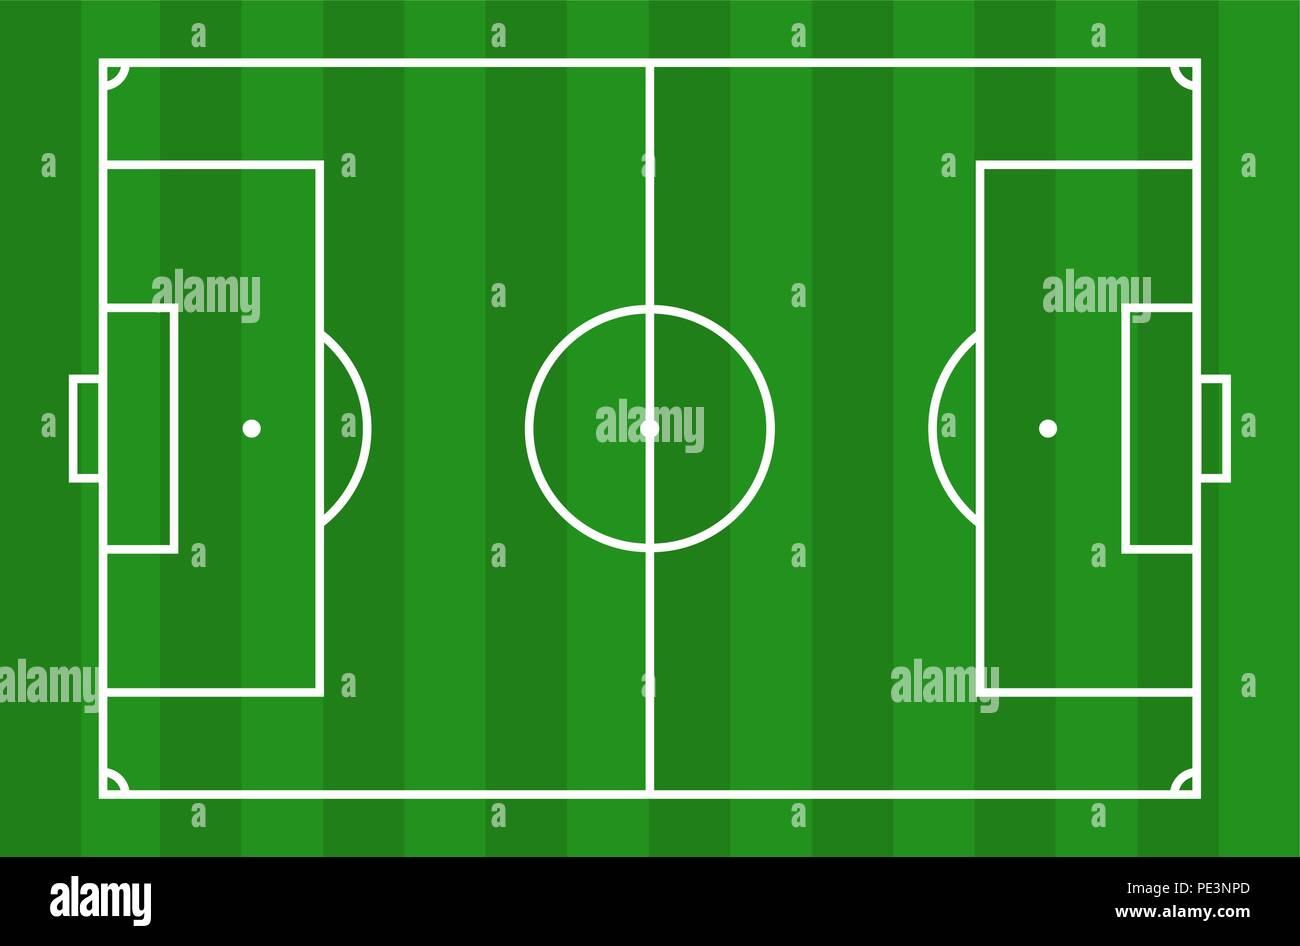 Soccer field - View from above - Stock Vector